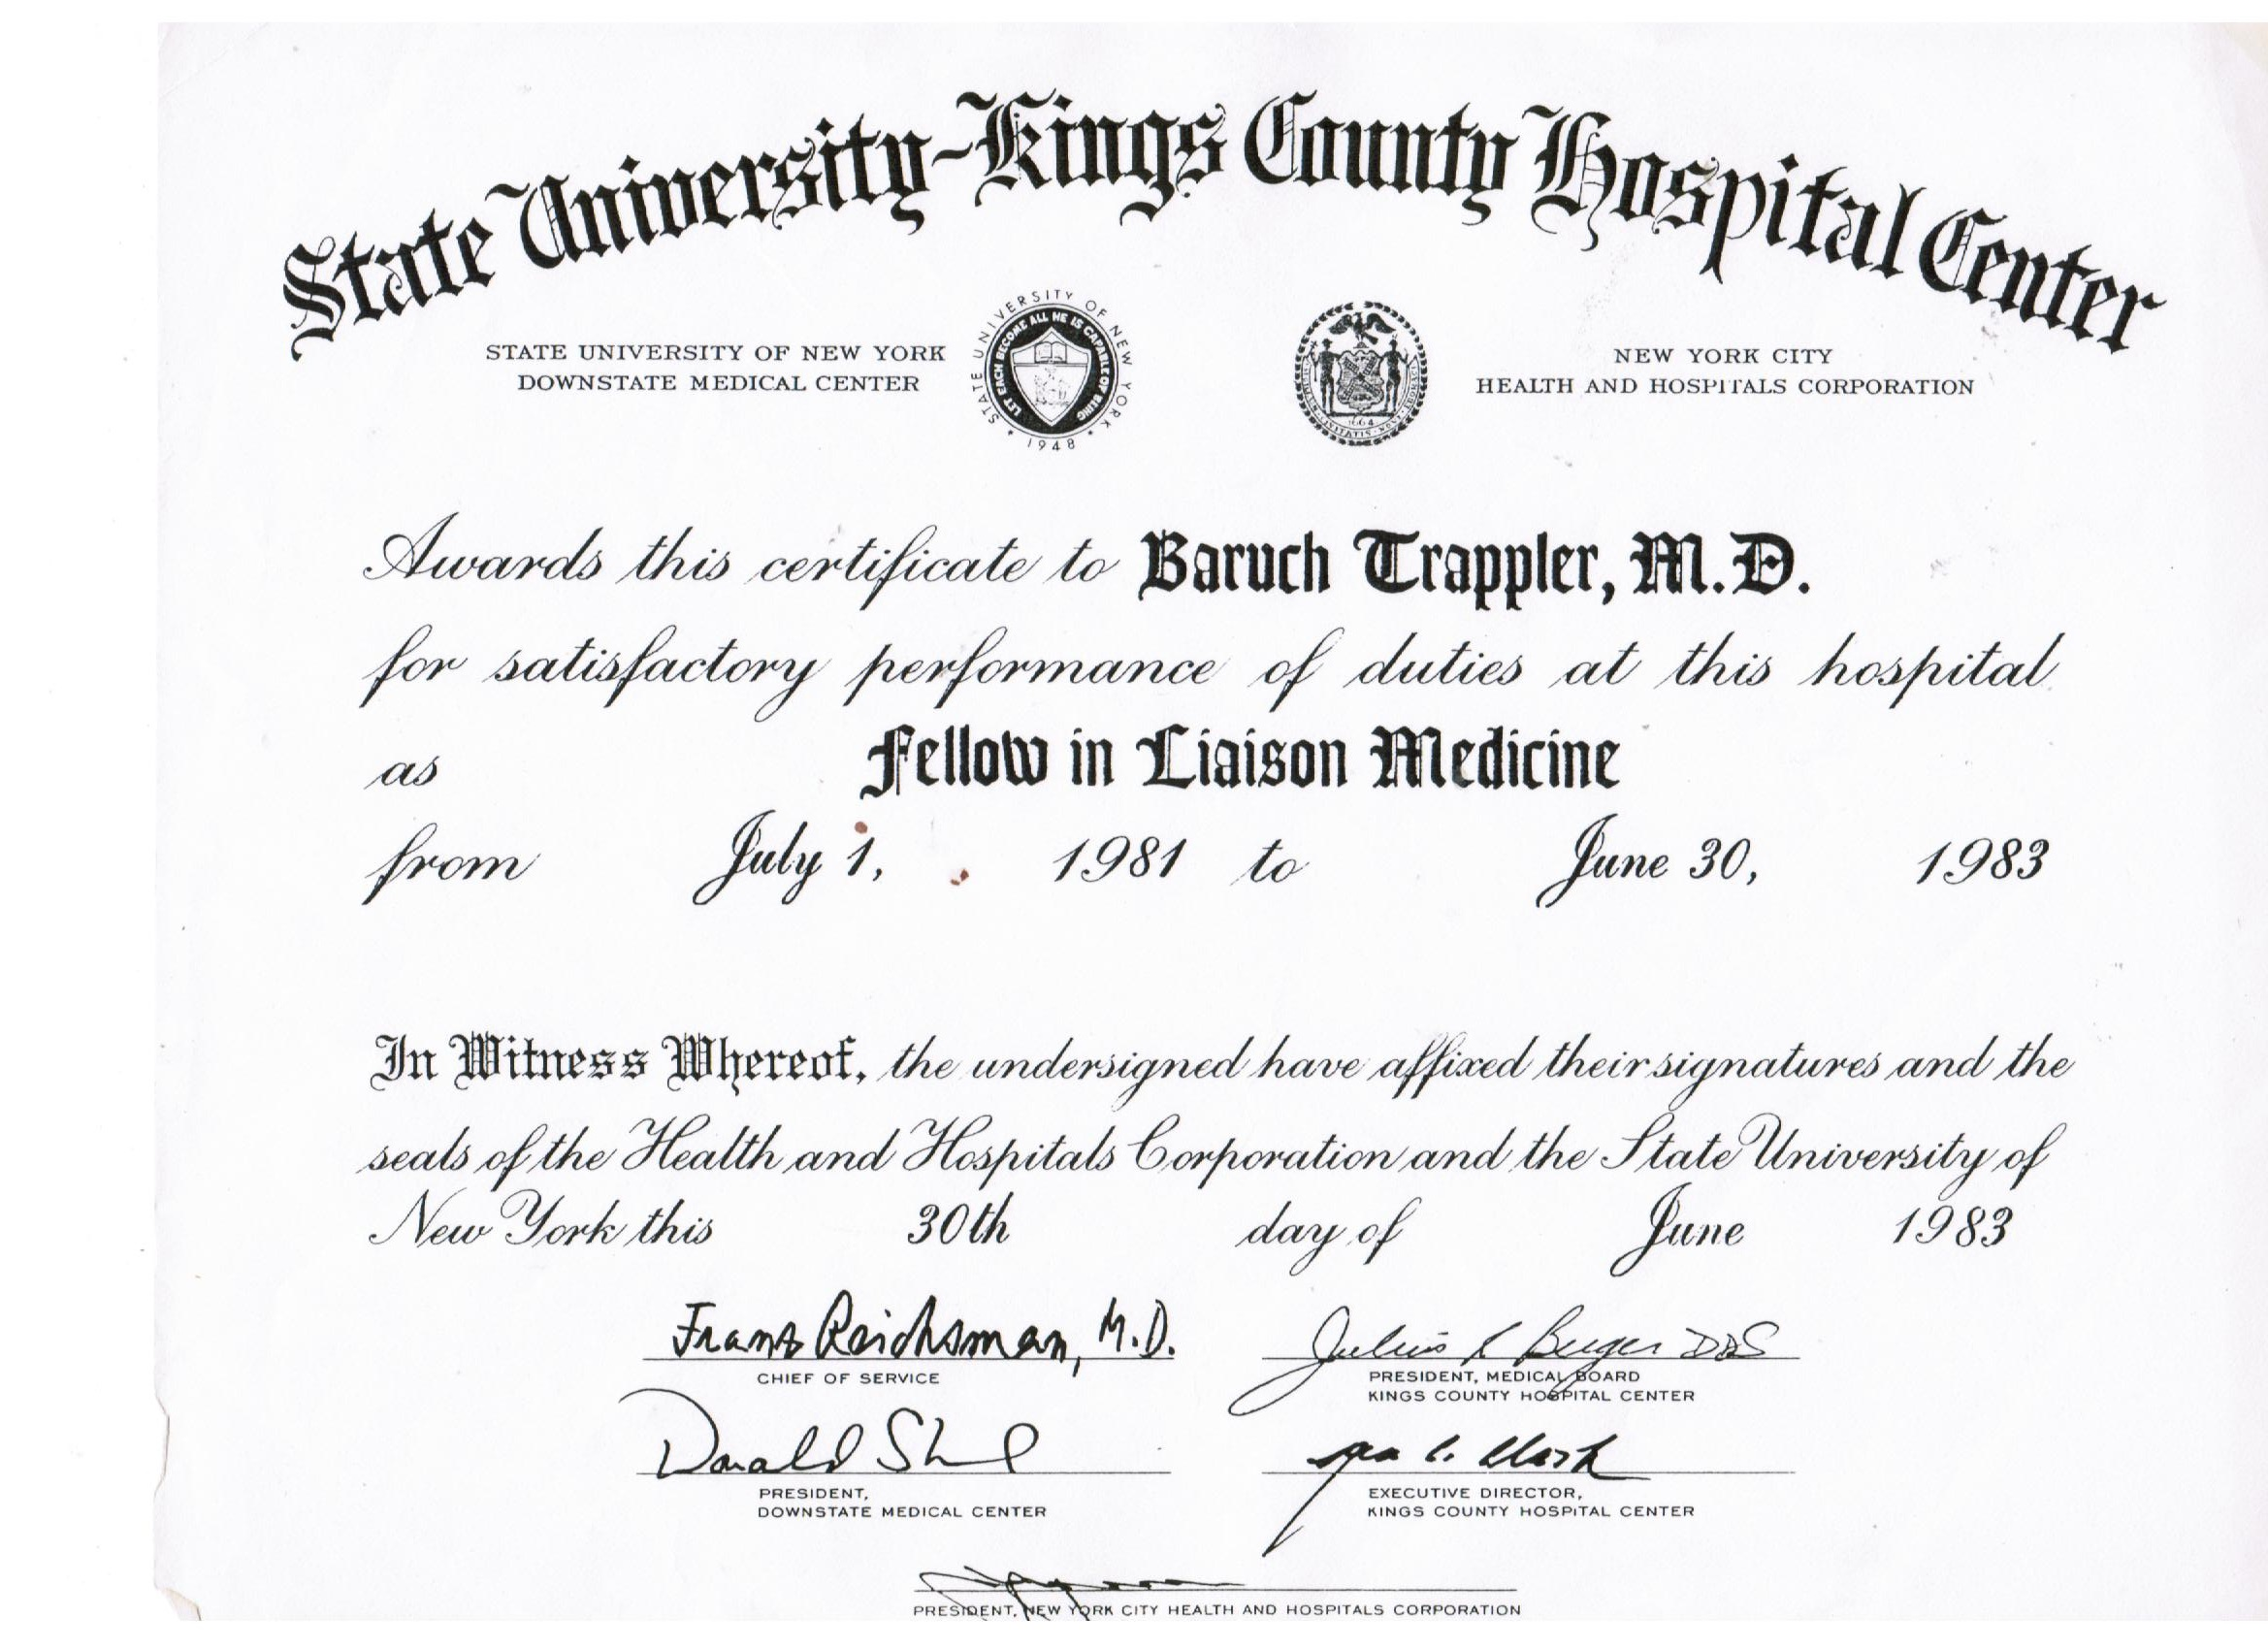 Graduation Certificates Briantrappler Md General Psychiatry